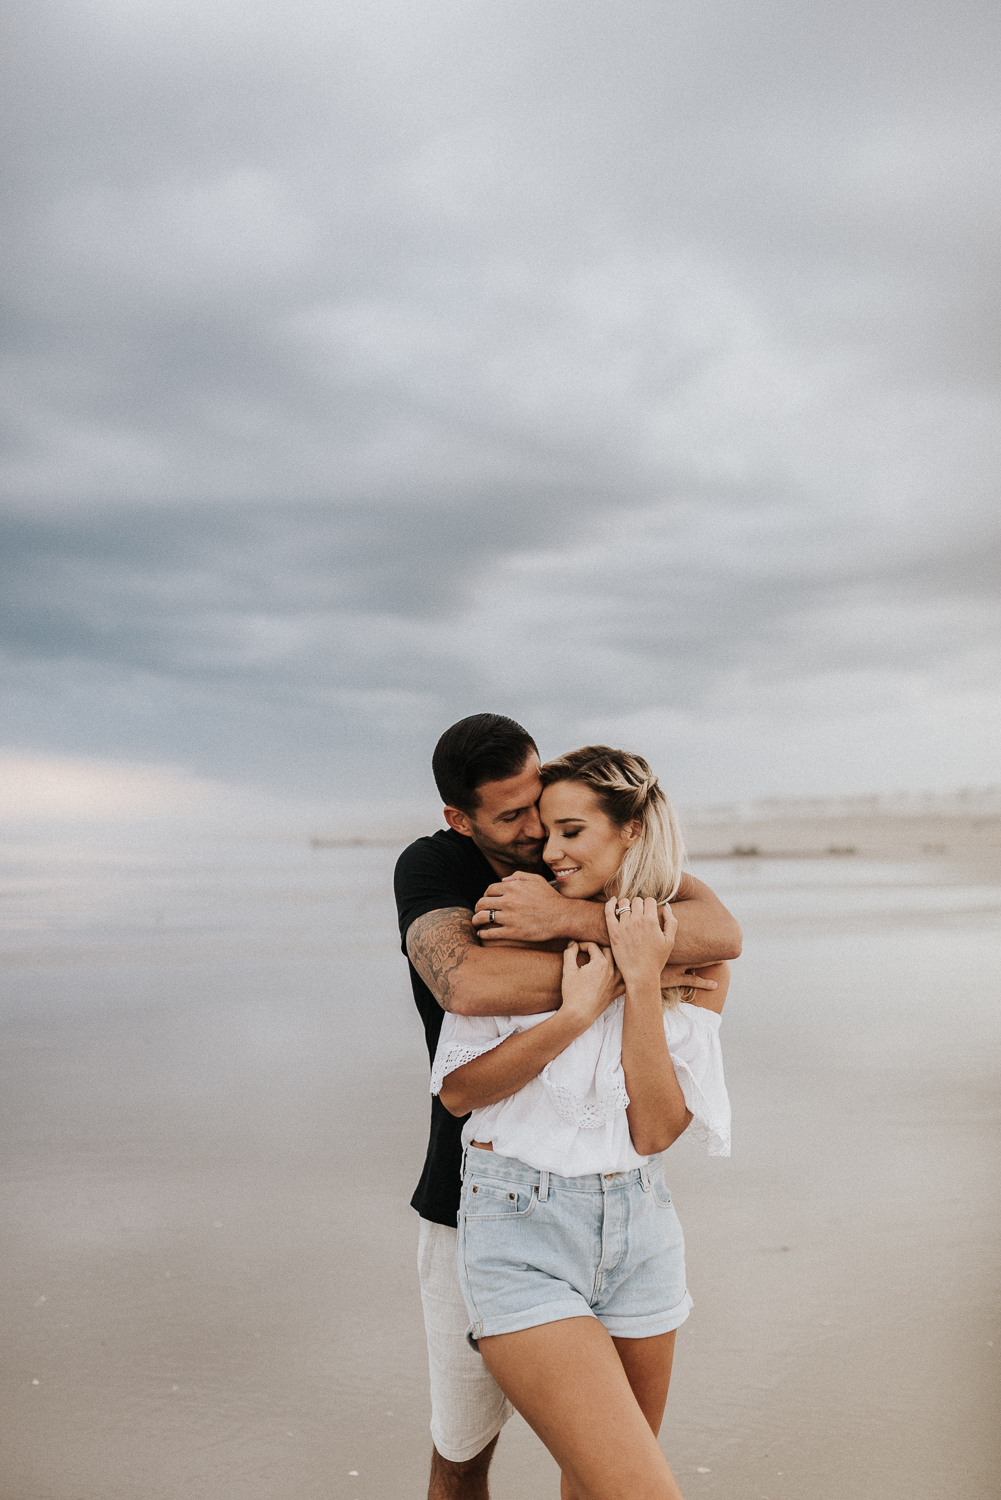 Emotive couples photographer | Morgan Ellis | Emotive images for couples around the world. | Philadelphia, New Jersey, Maine, South Carolina, North Carolina, Oklahoma, Massachusetts | #emotiveimages #engagementphotos #couplesphotographer #emotionalphotos